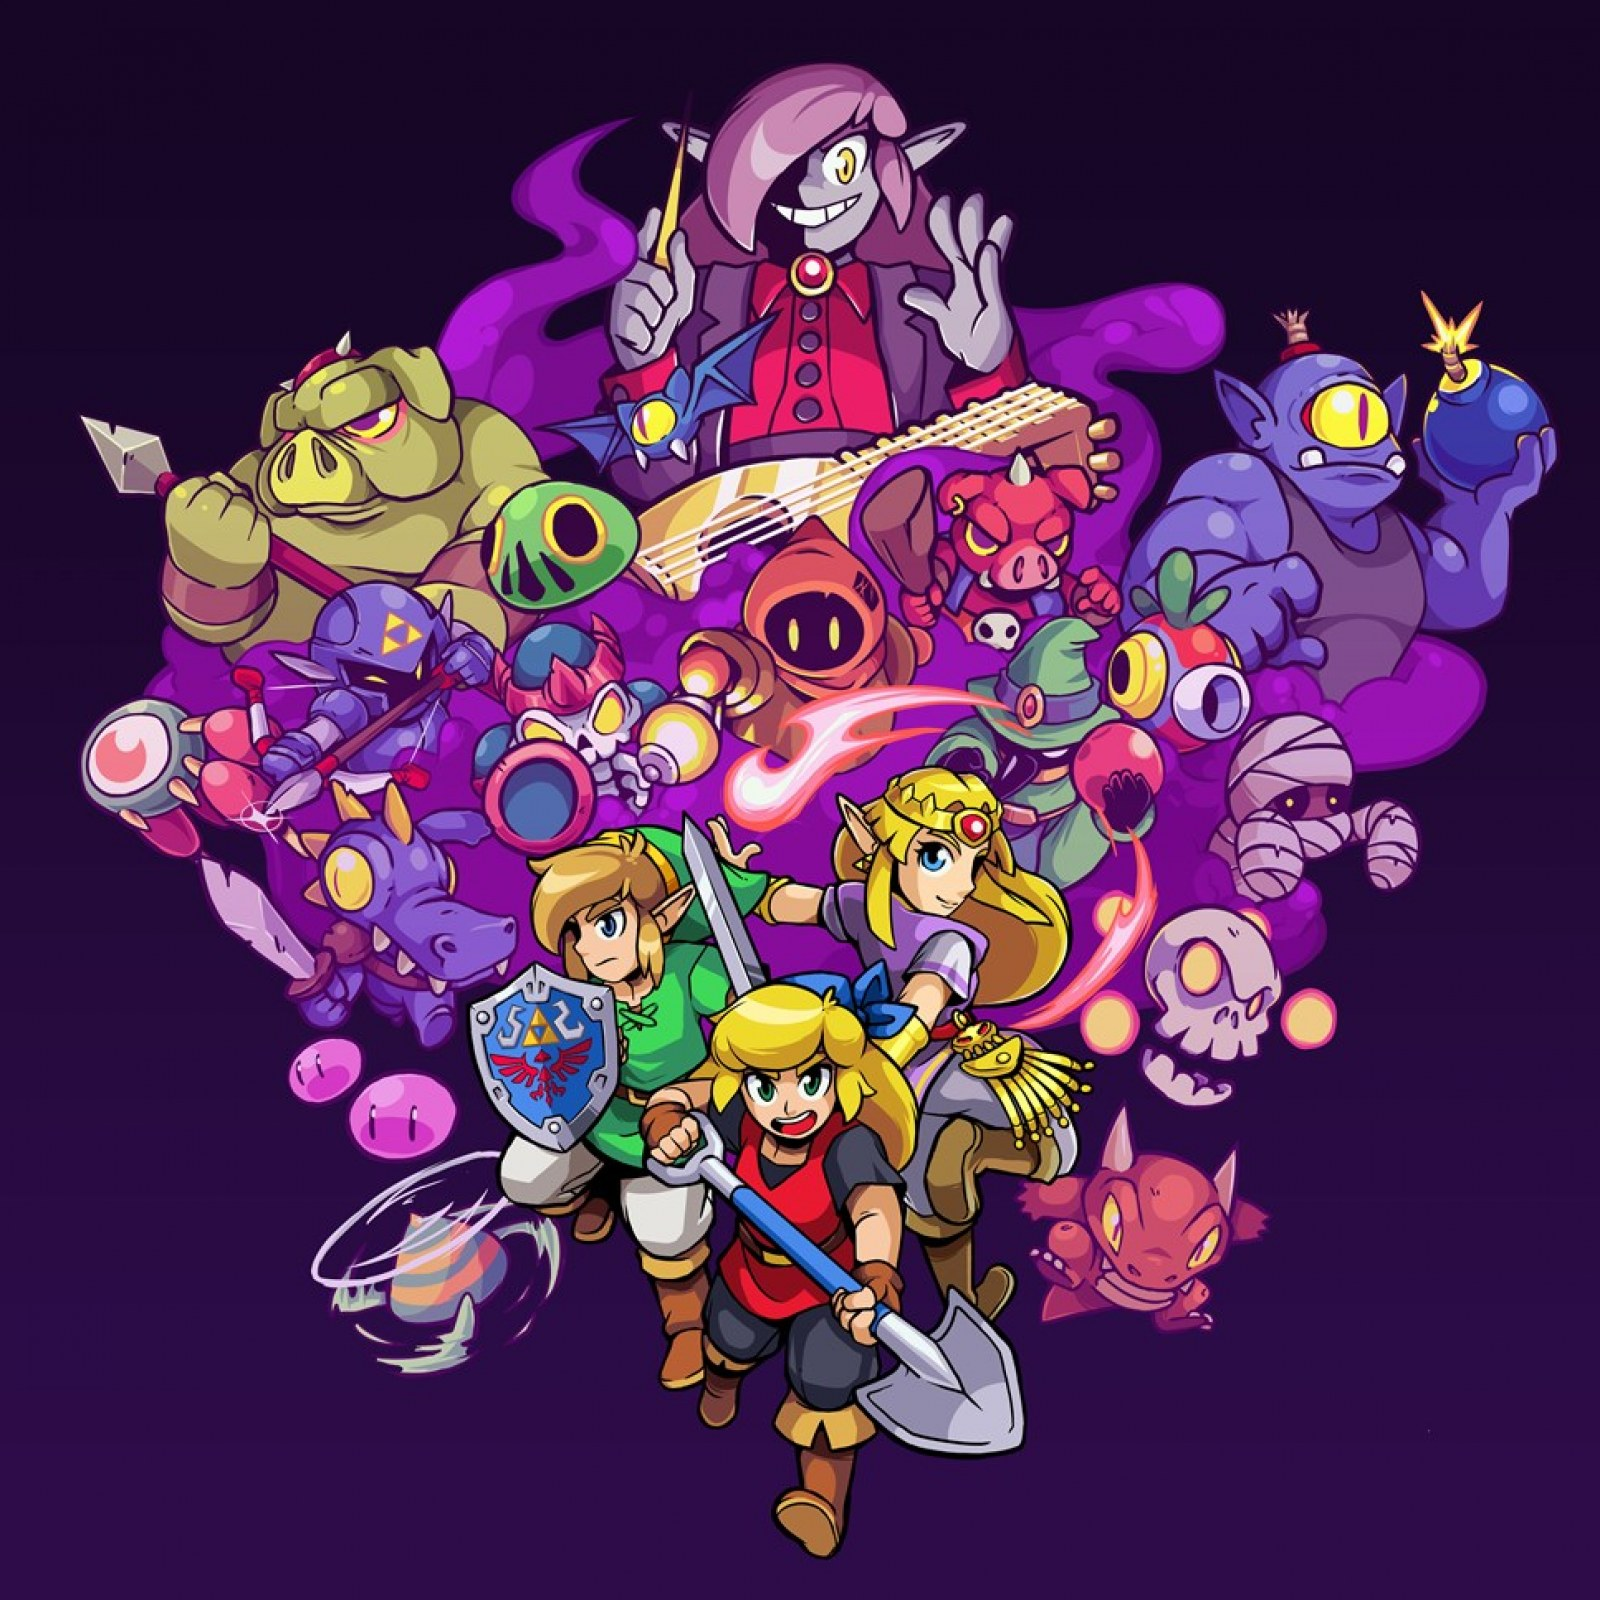 Cadence Of Hyrule Review Inspired And Fun Mashup That Feels Like